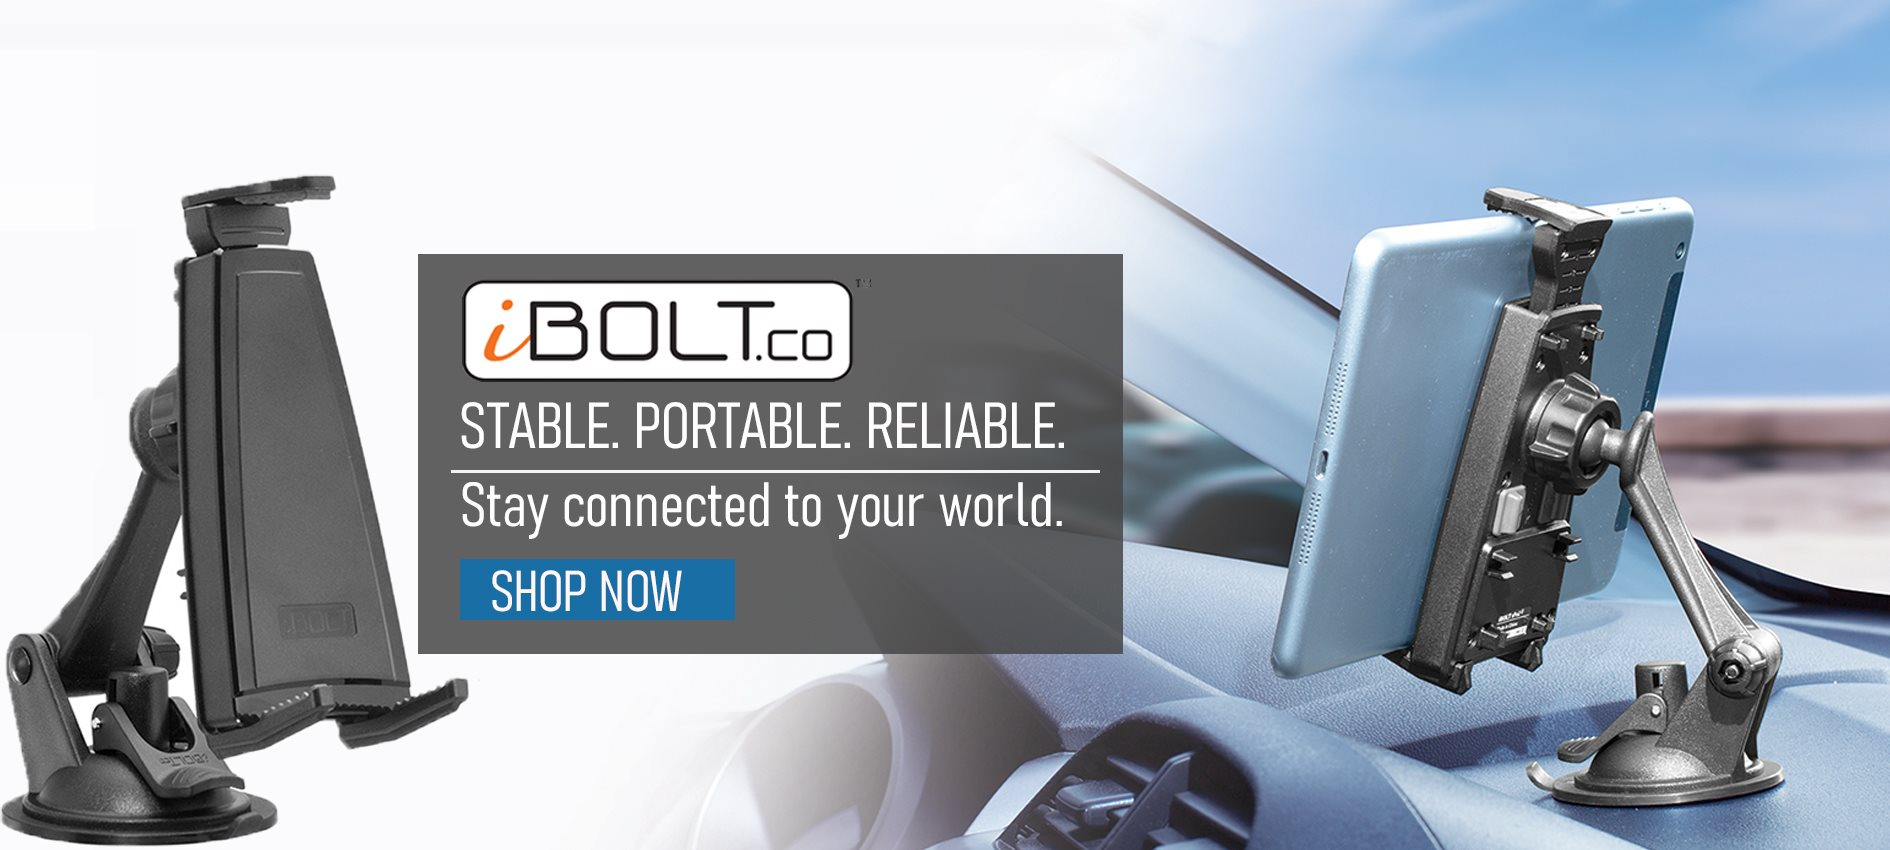 iBolt banner image of device mount for car